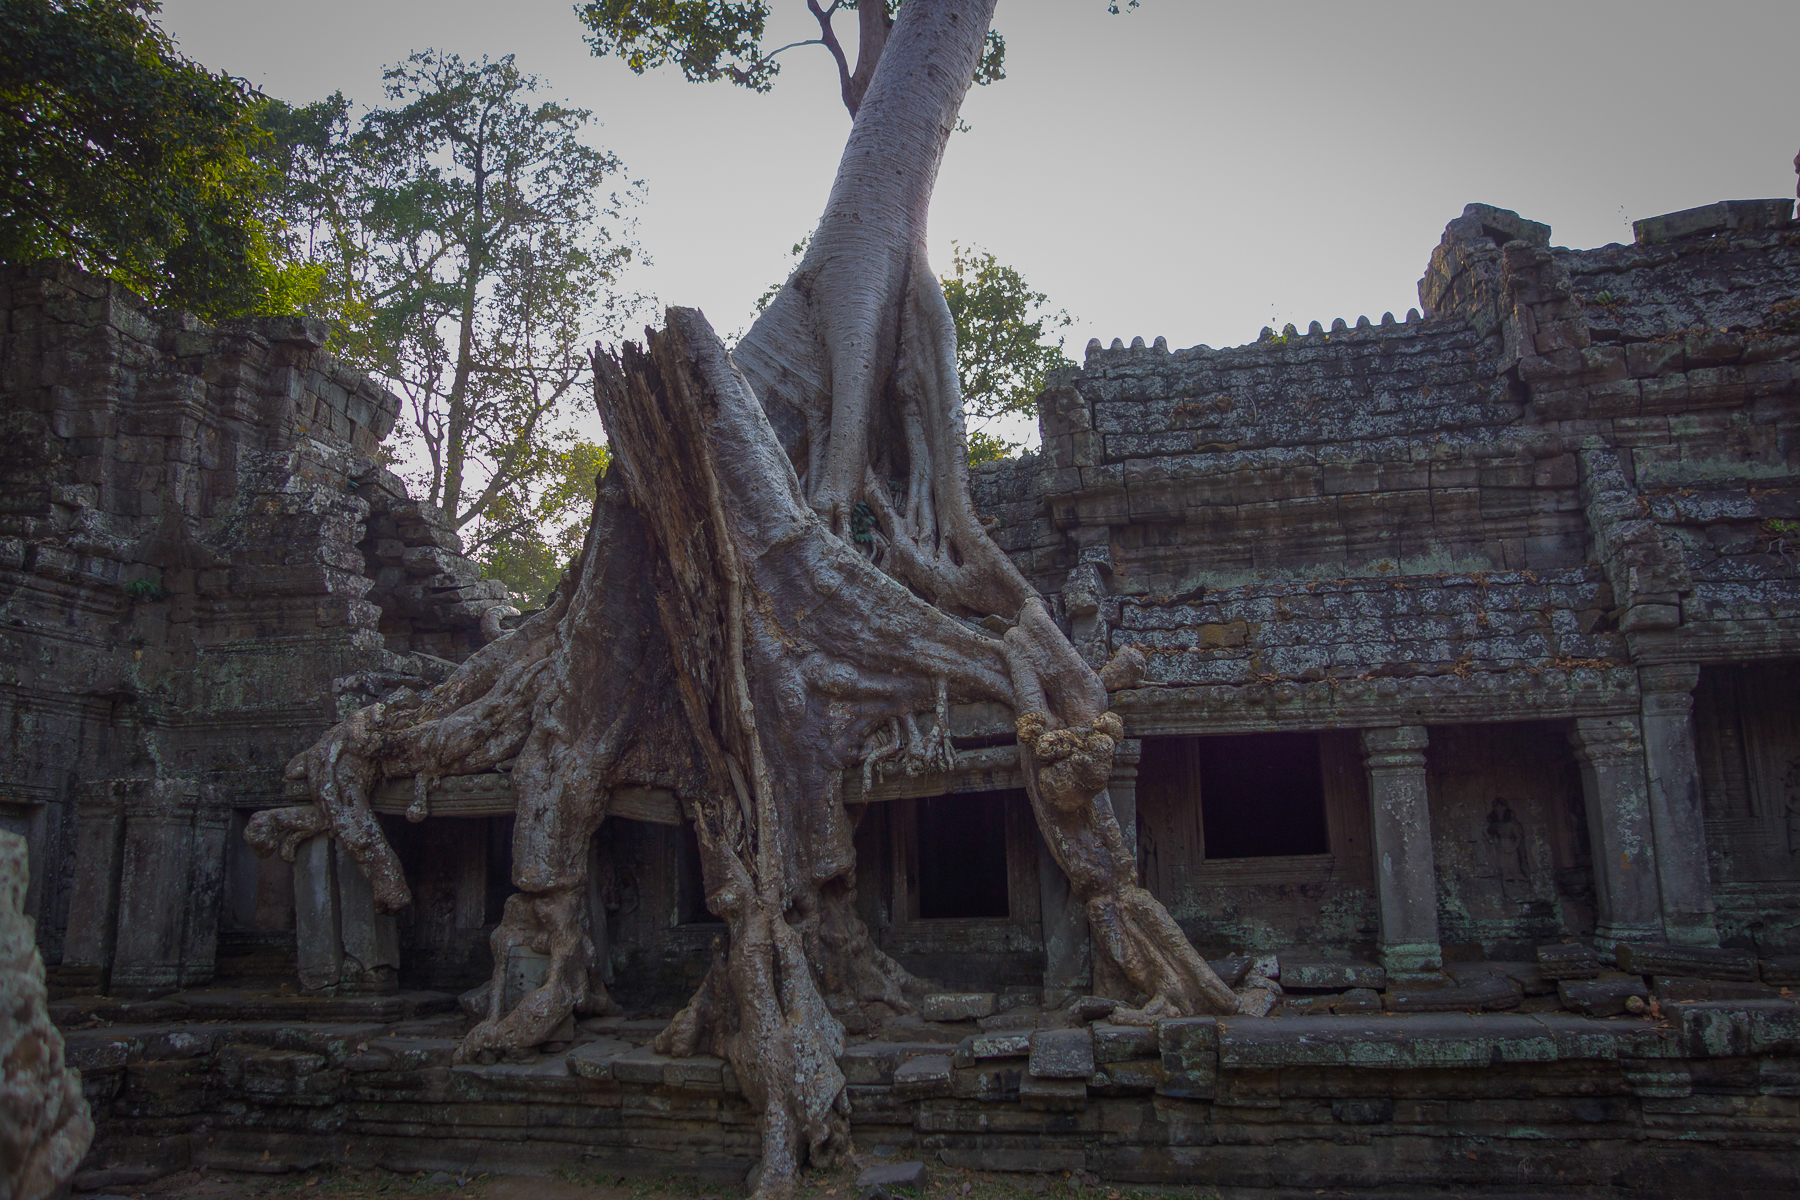 Invaded Preah Khan